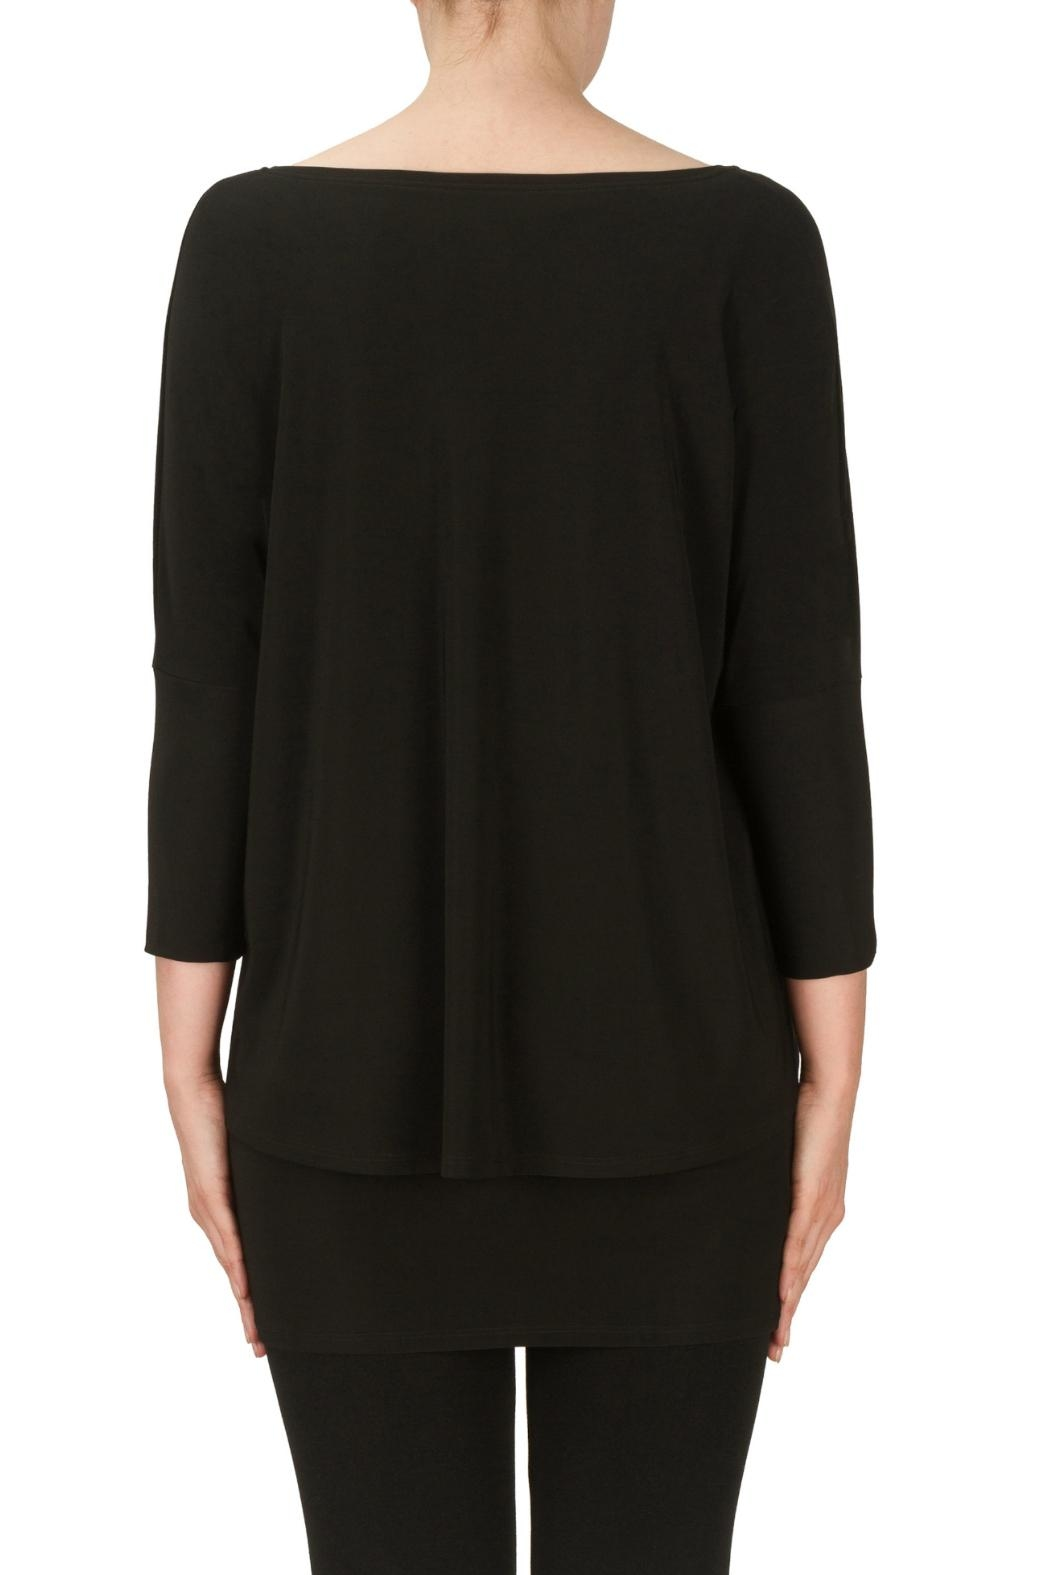 Joseph Ribkoff Double Layered Tunic - Side Cropped Image